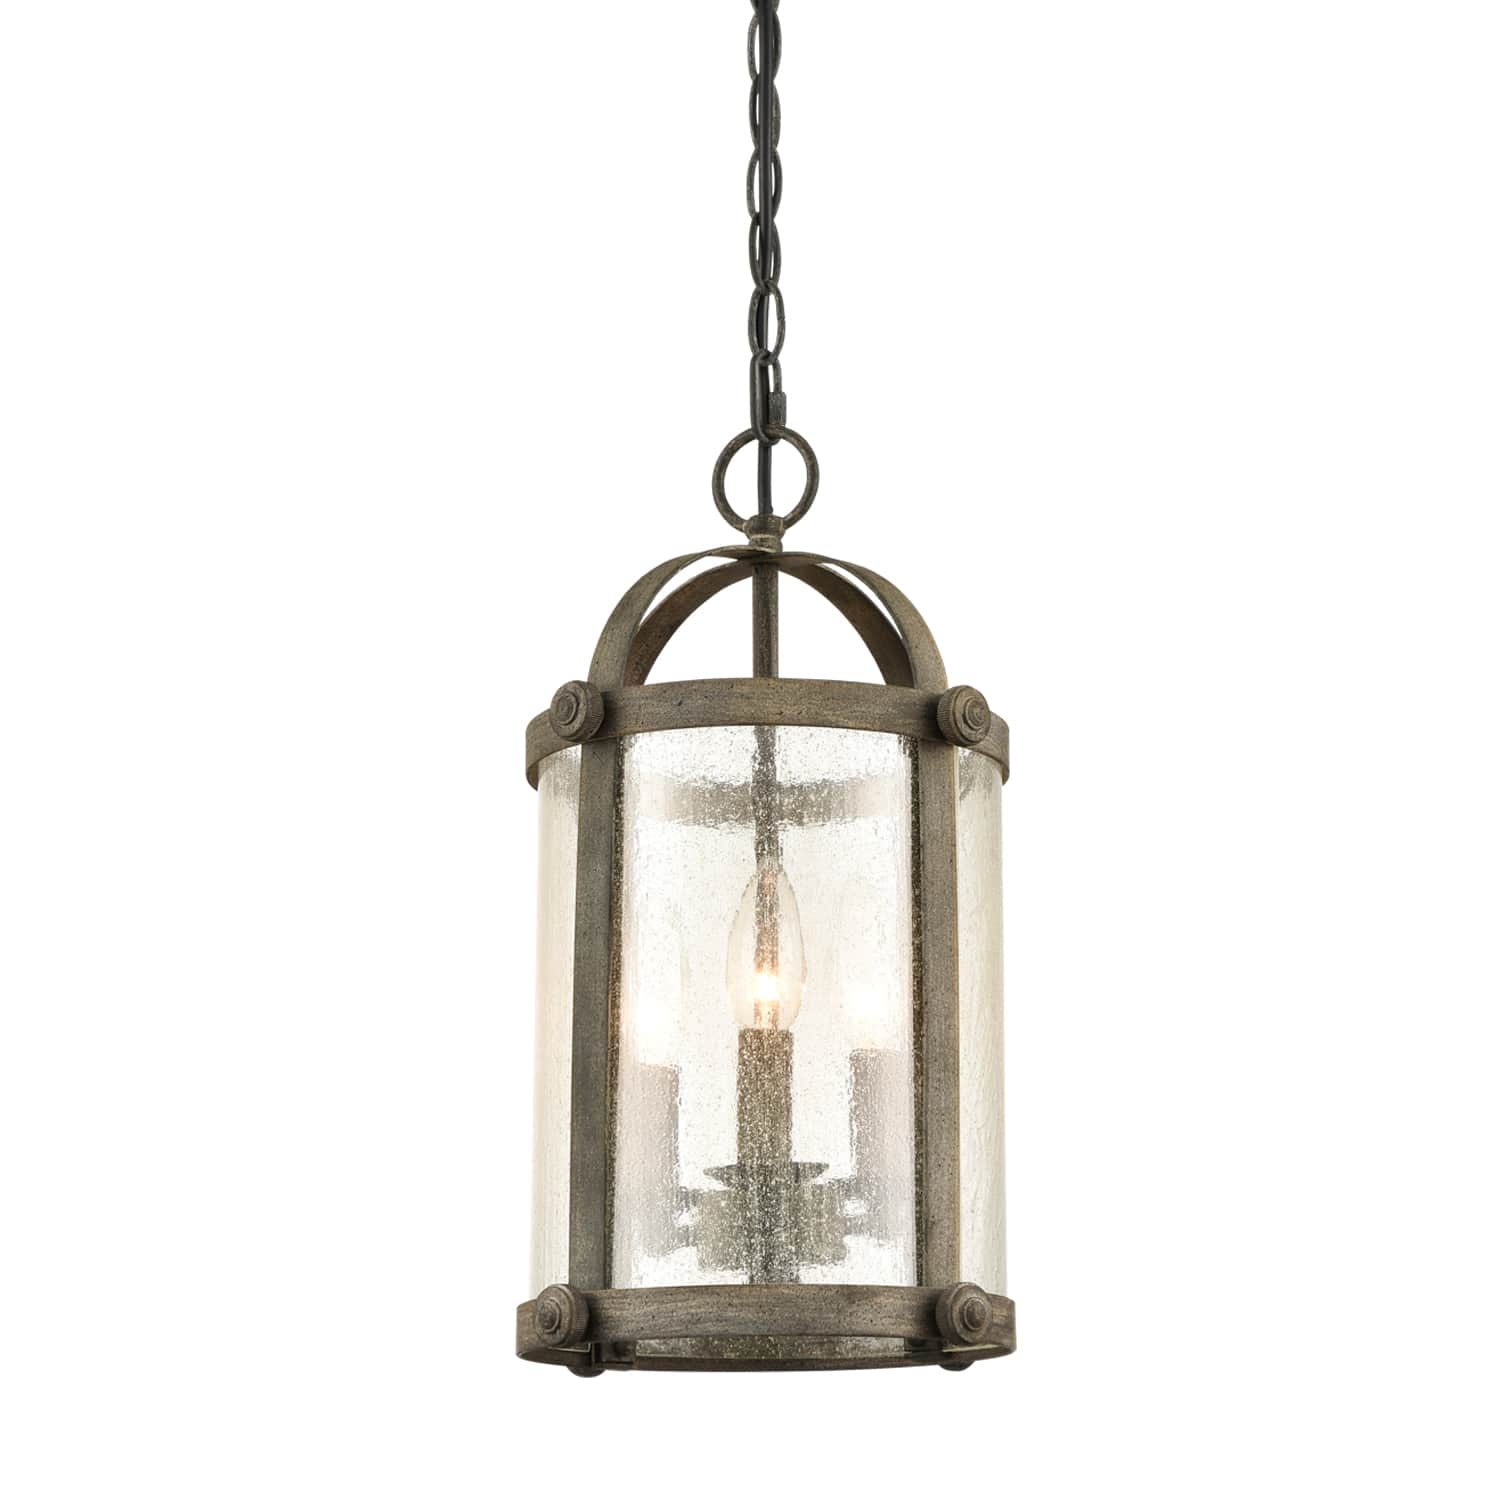 Industrial Pendant Light Fixture Seeded Glass Kitchen Island Brushed Nickel NEW